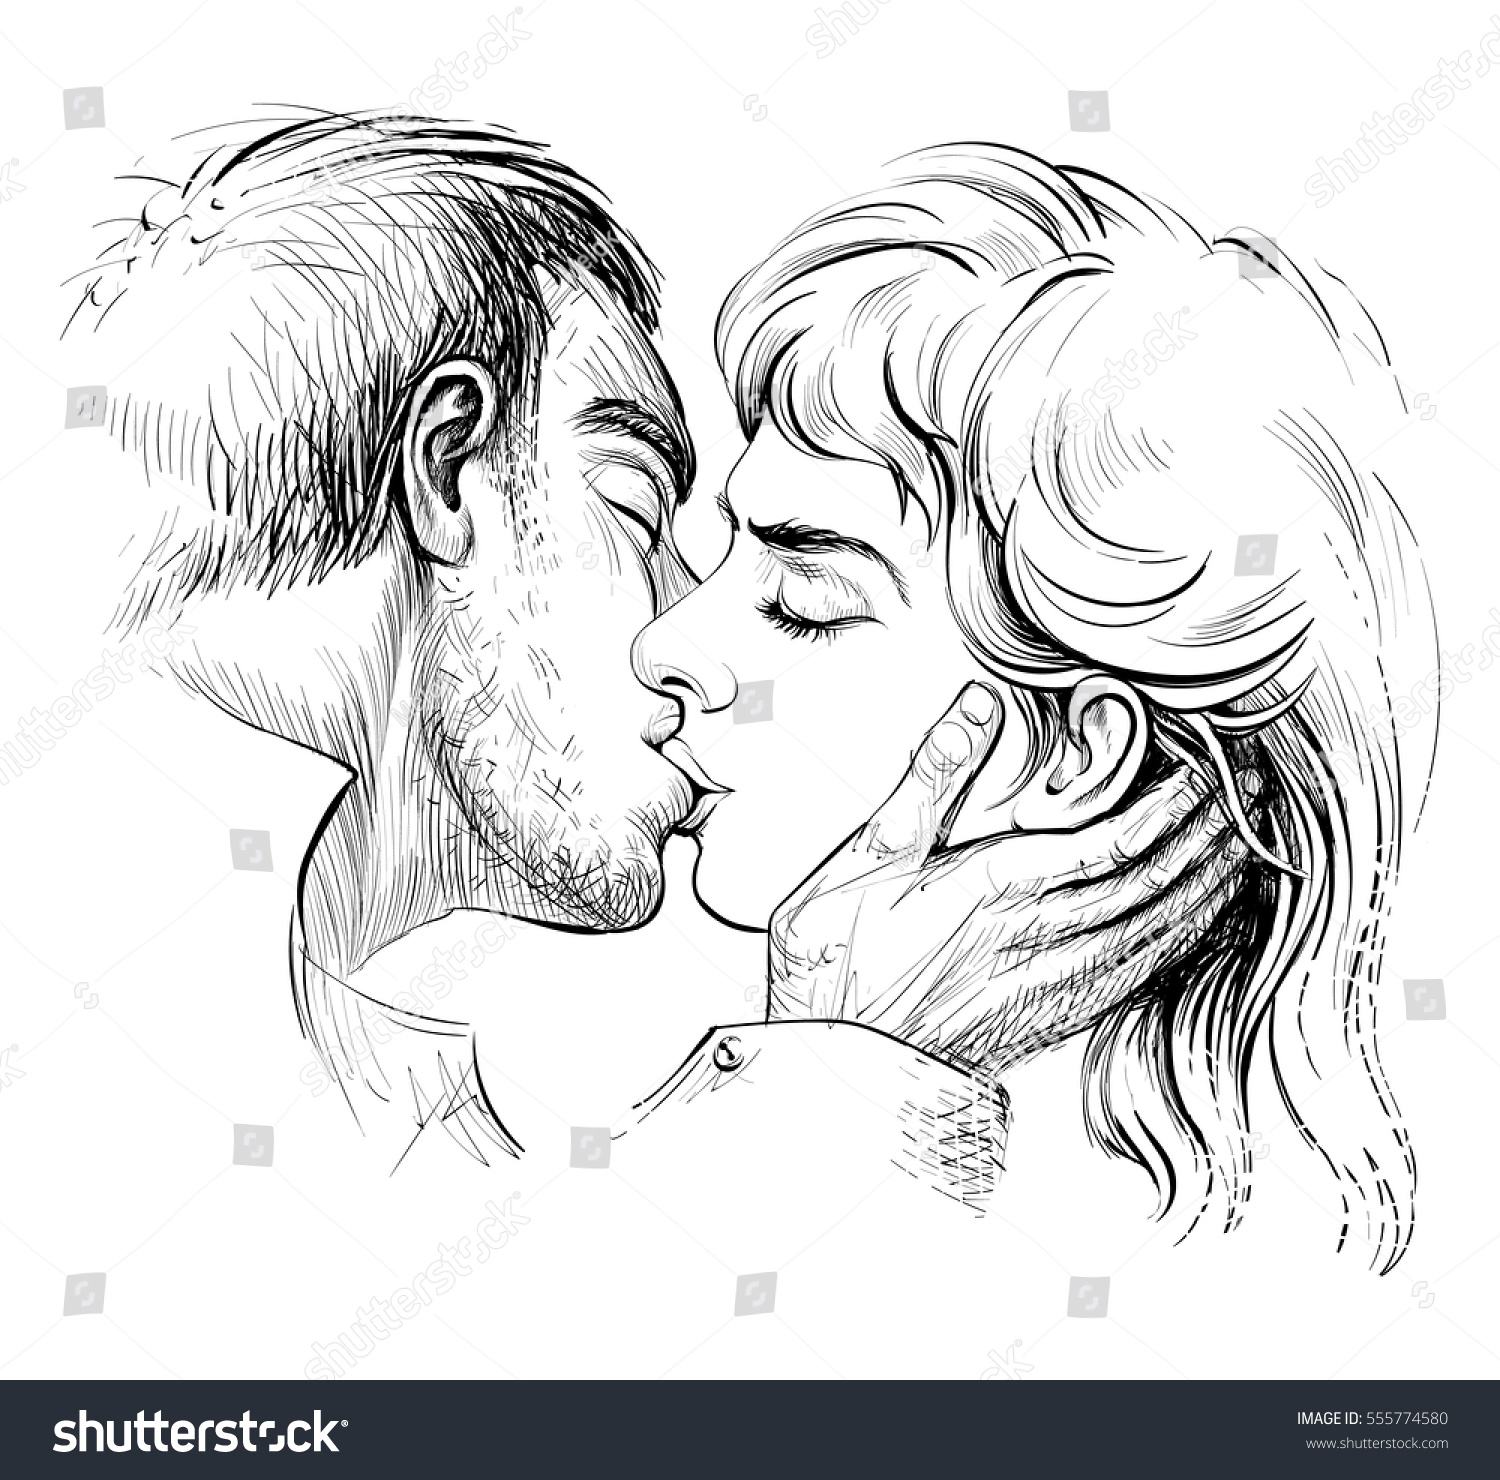 Kissing couple in love black and white hand drawn sketch romantic scene with man